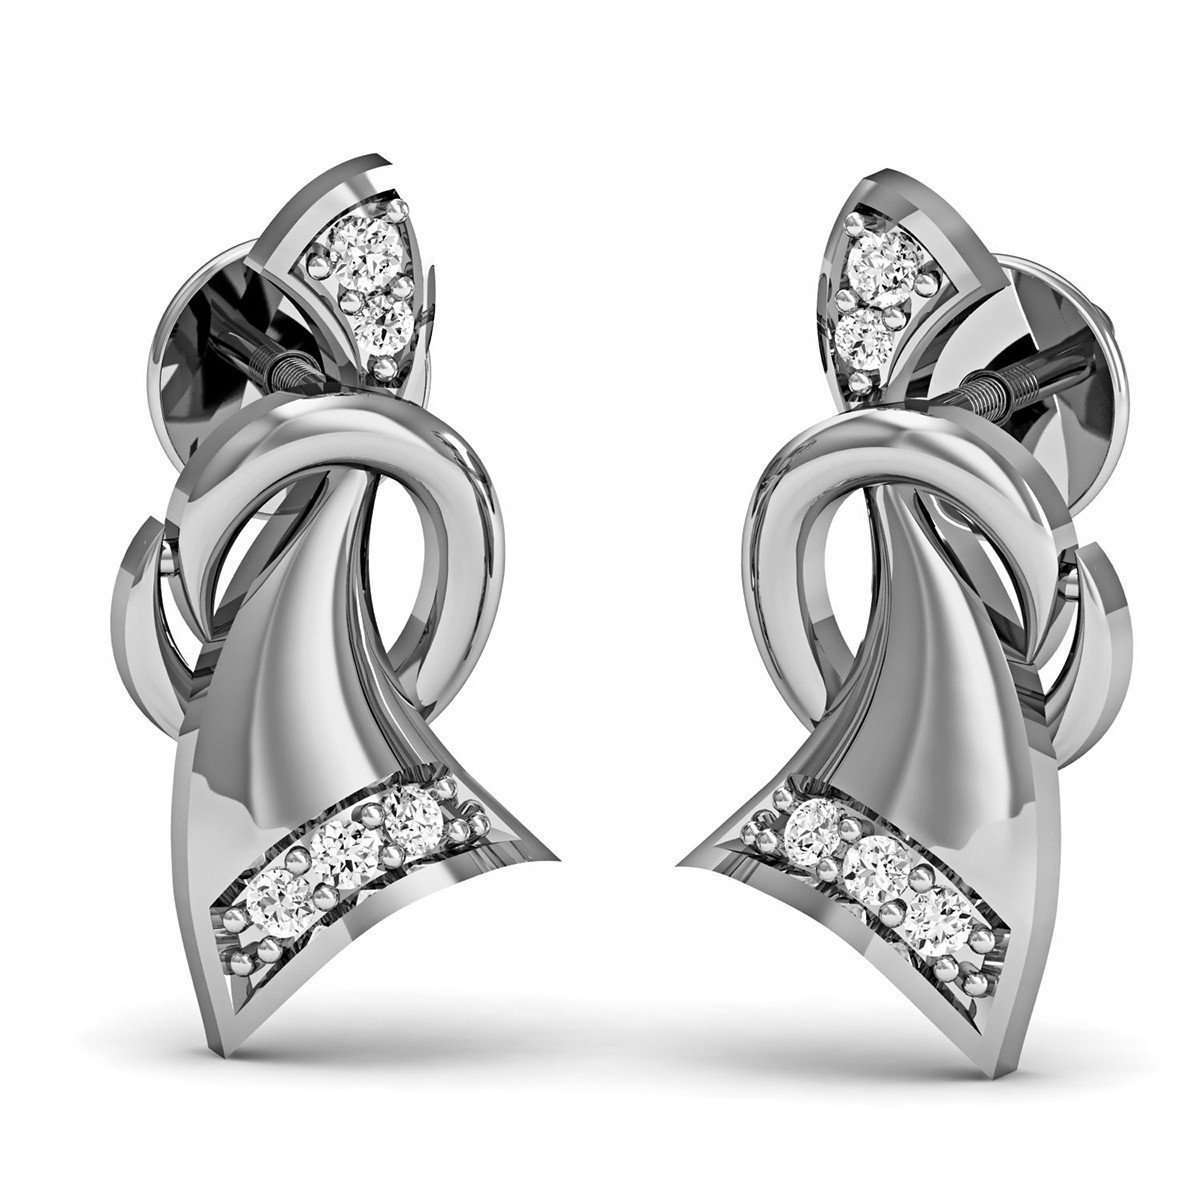 10kt White Gold Pave Stud Earrings with 10 Premium Diamonds-Diamoire Jewels-JewelStreet US